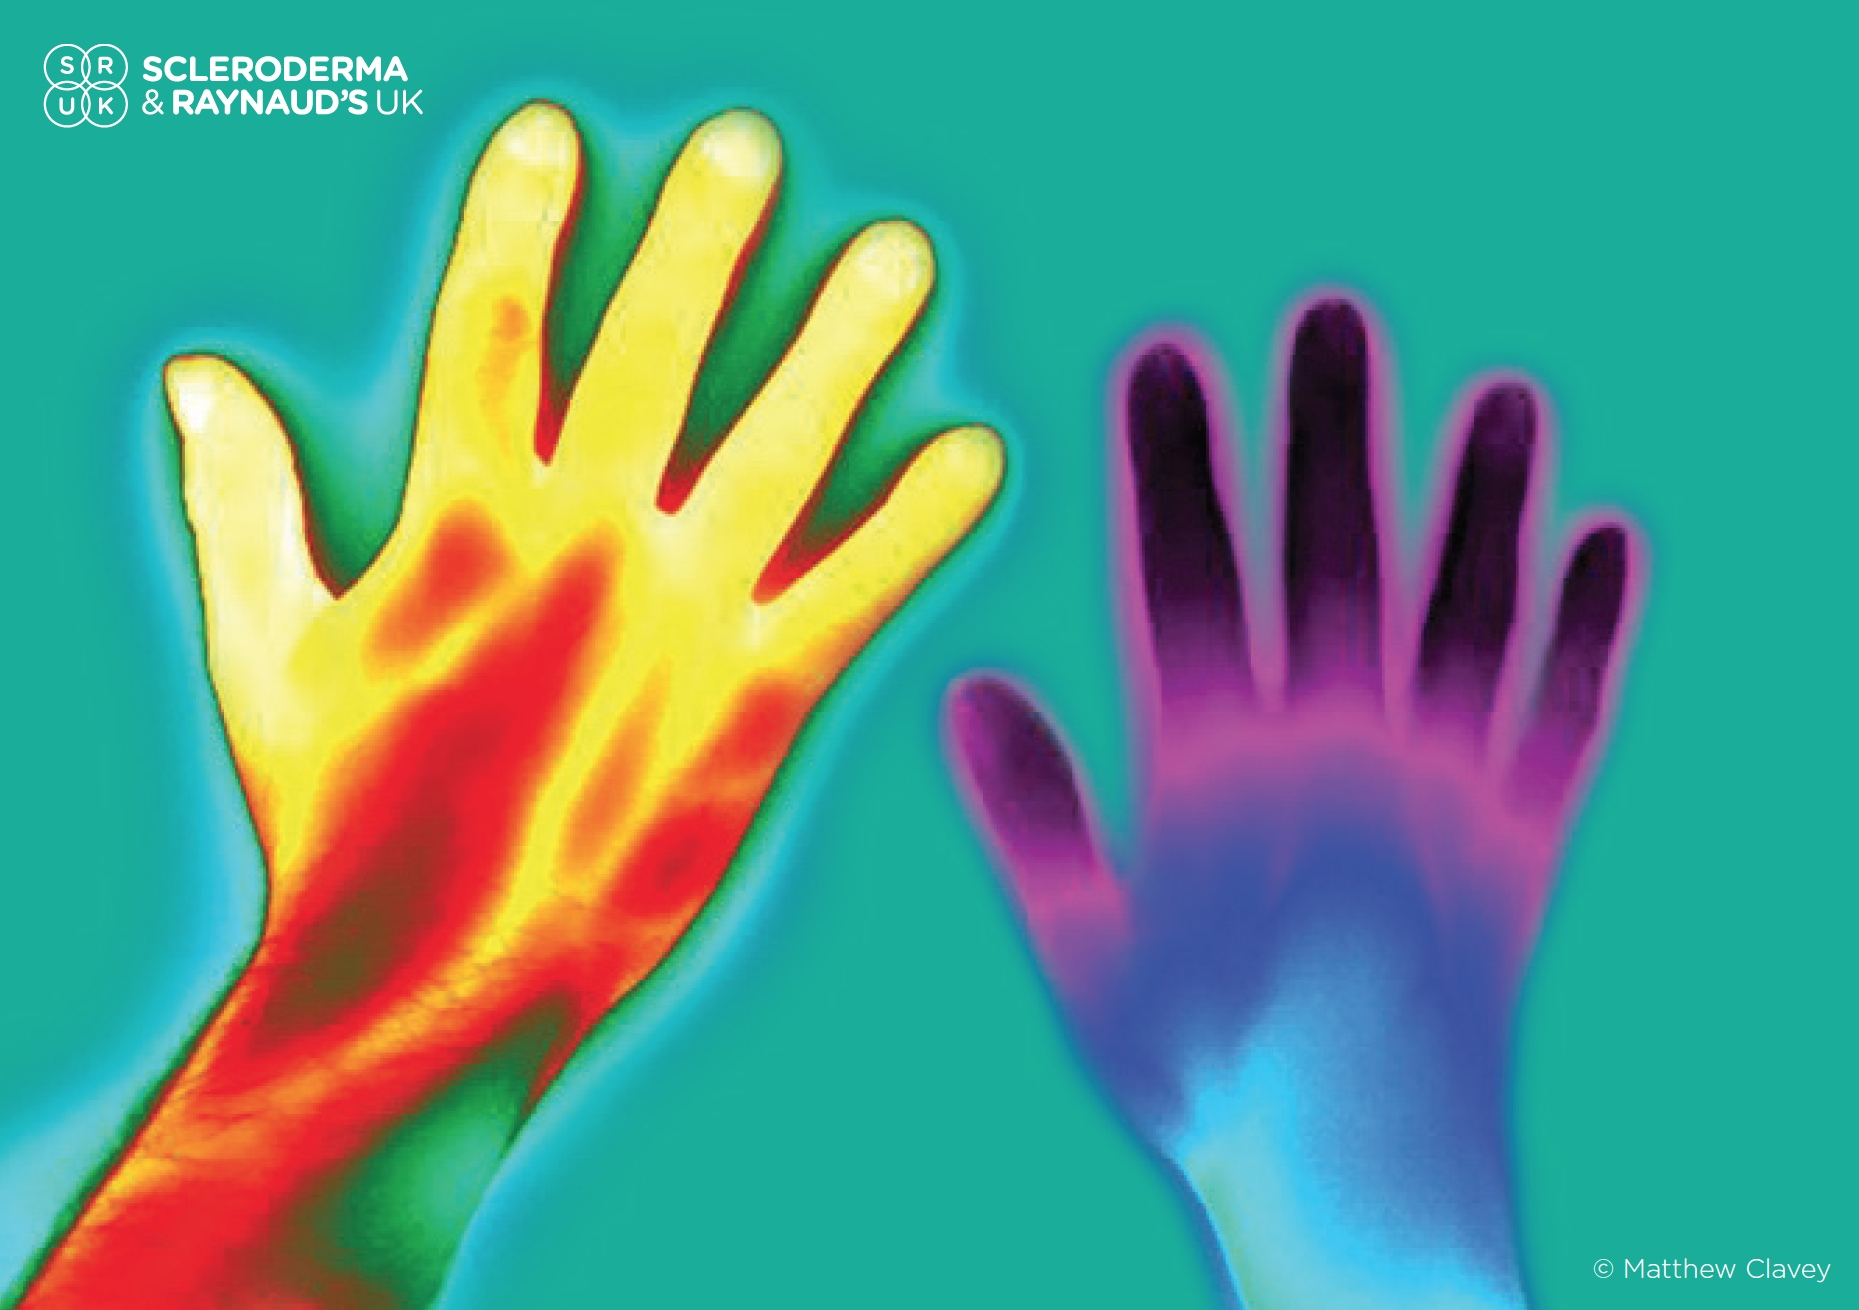 February is Raynaud's awareness month get involved #raiseyourhands